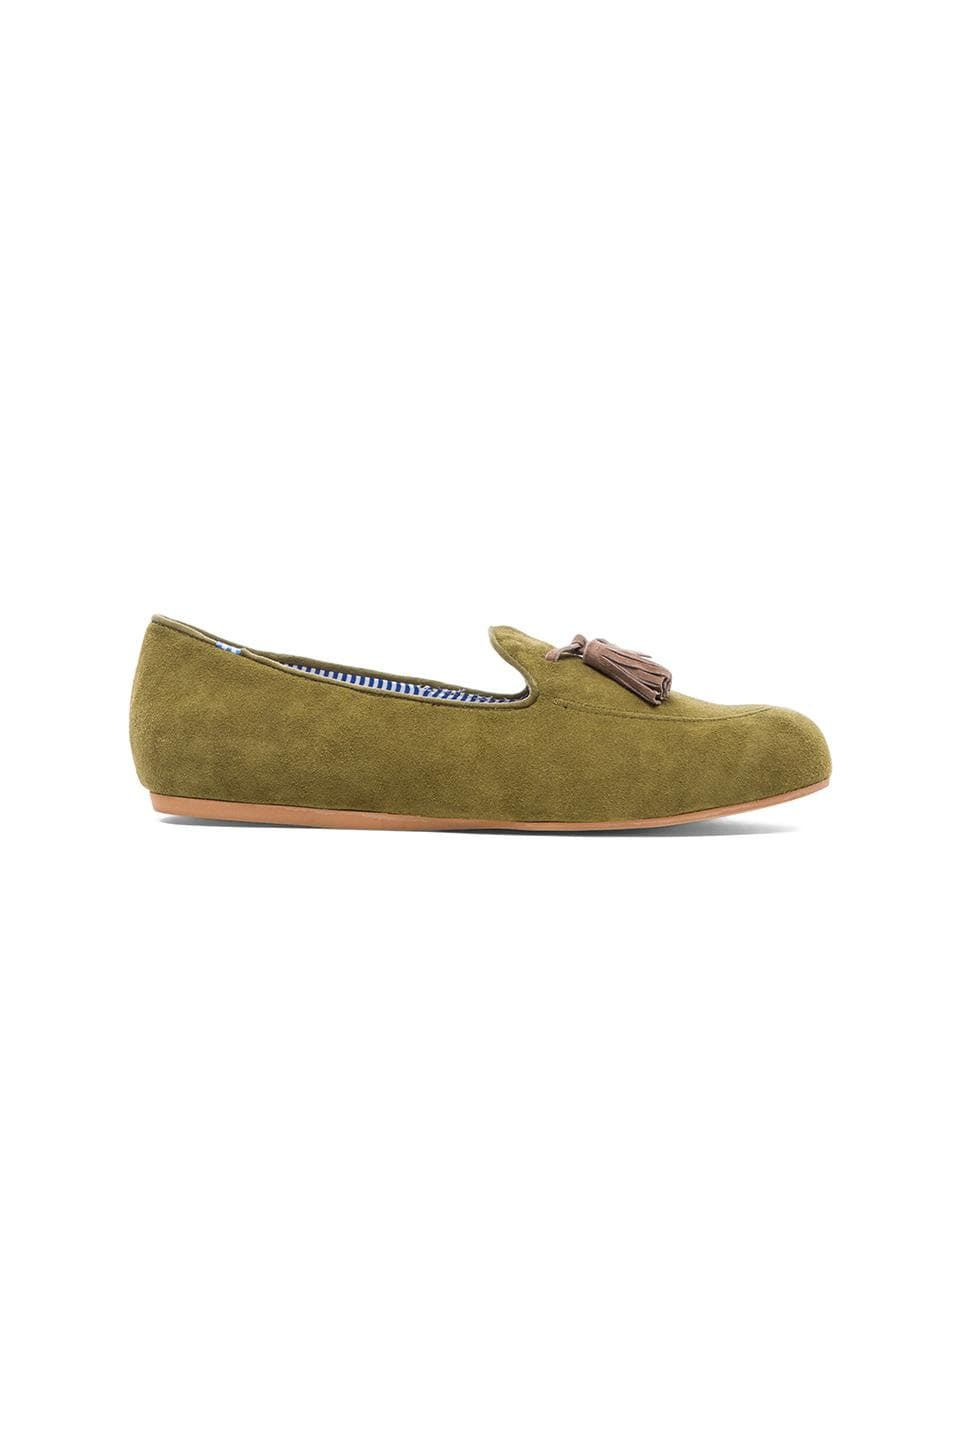 Charles Philip Shanghai Ronald Loafer in Sage & Taupe